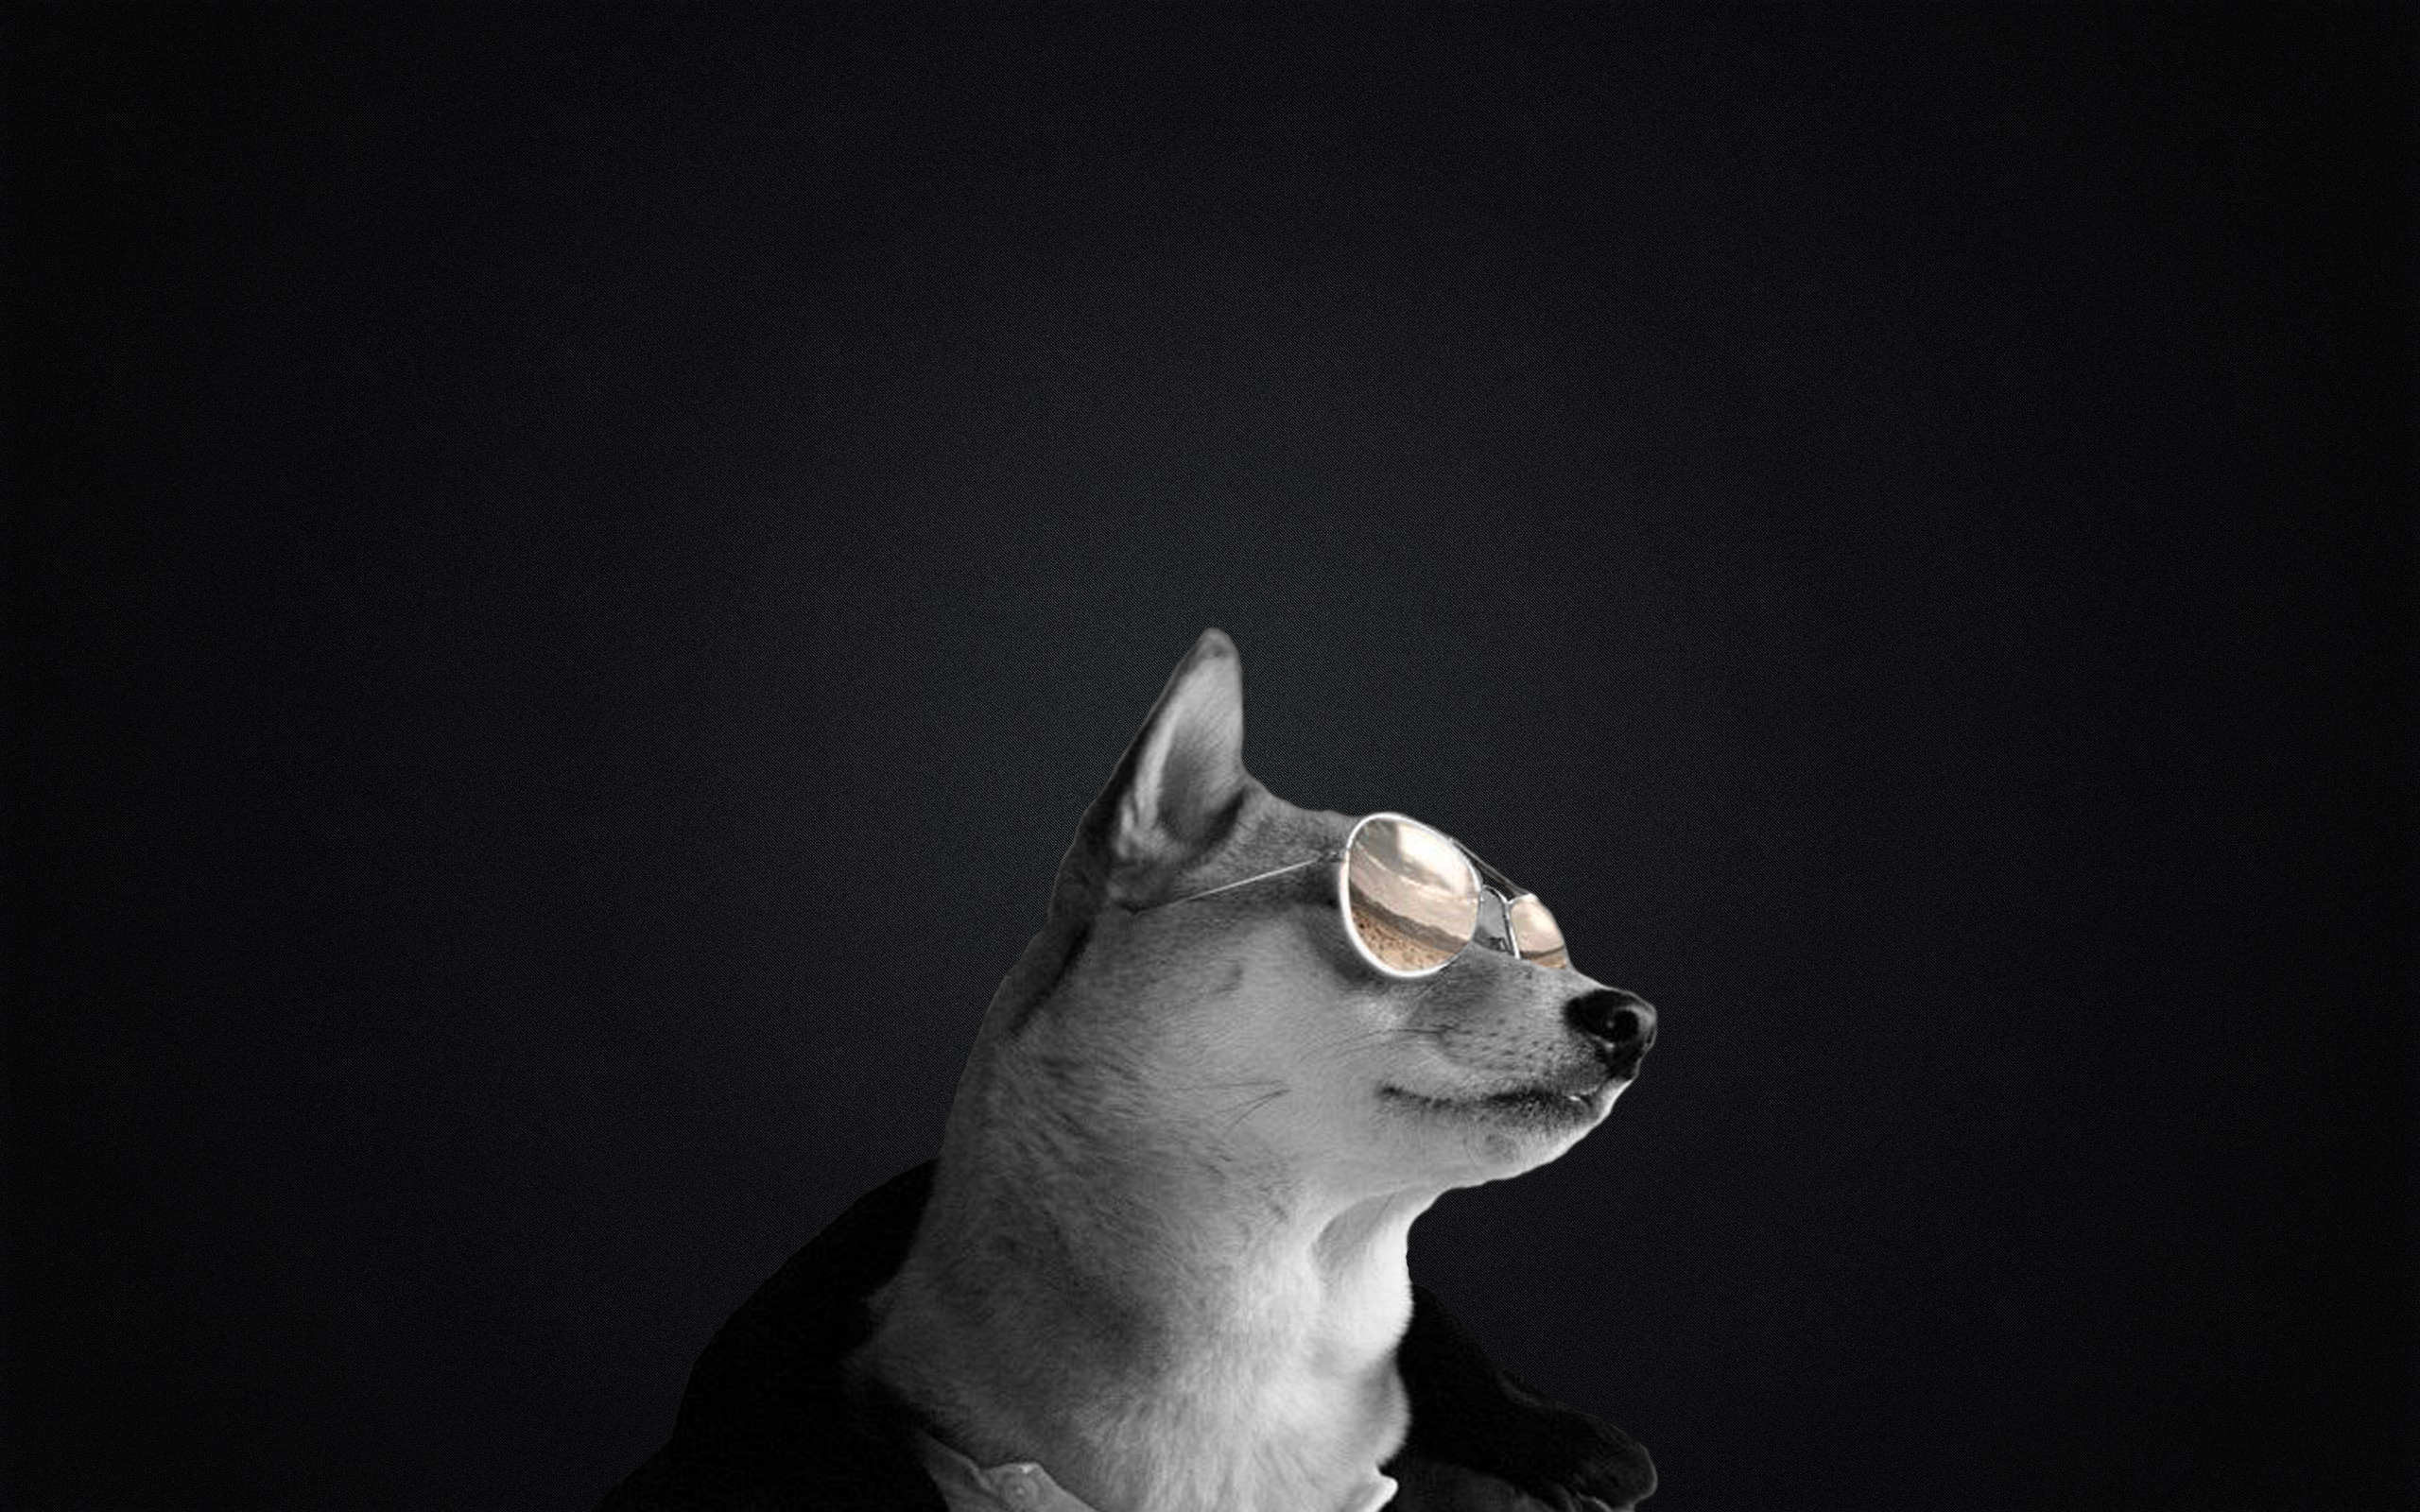 2560x1600 Badass doge with sunglasses wallpaper ...